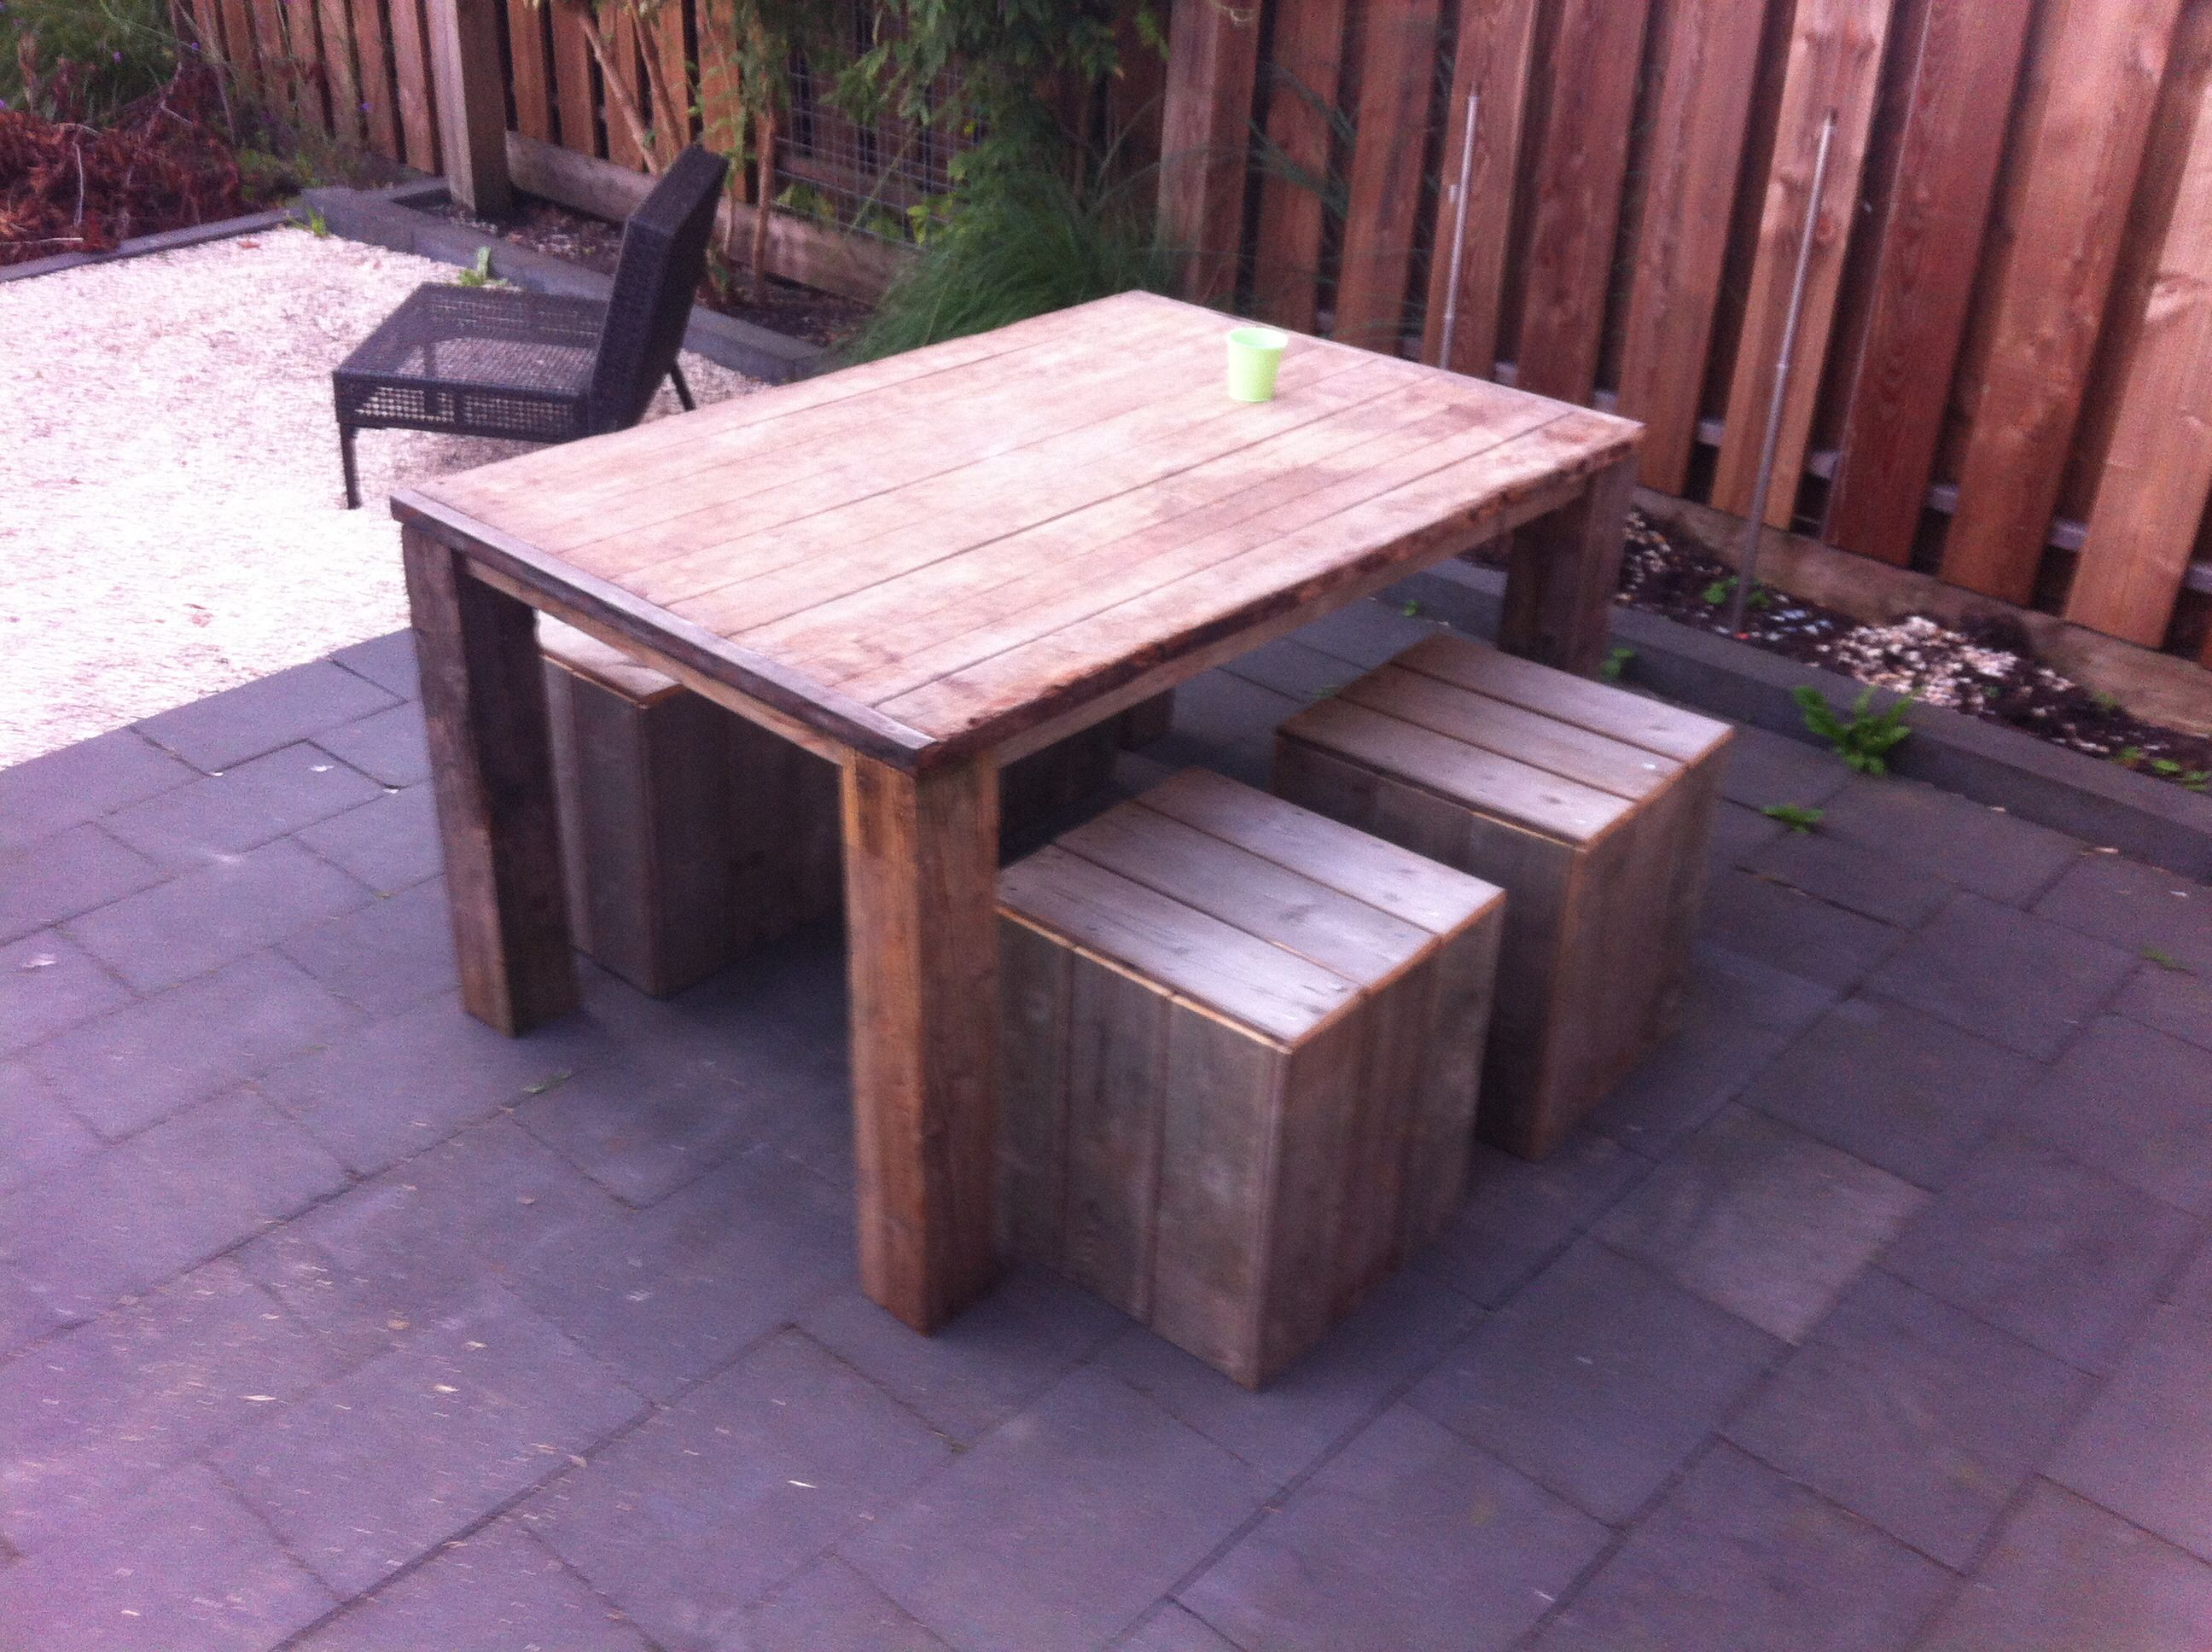 60 Garden Furniture Homemade From The Old Wooden Fence